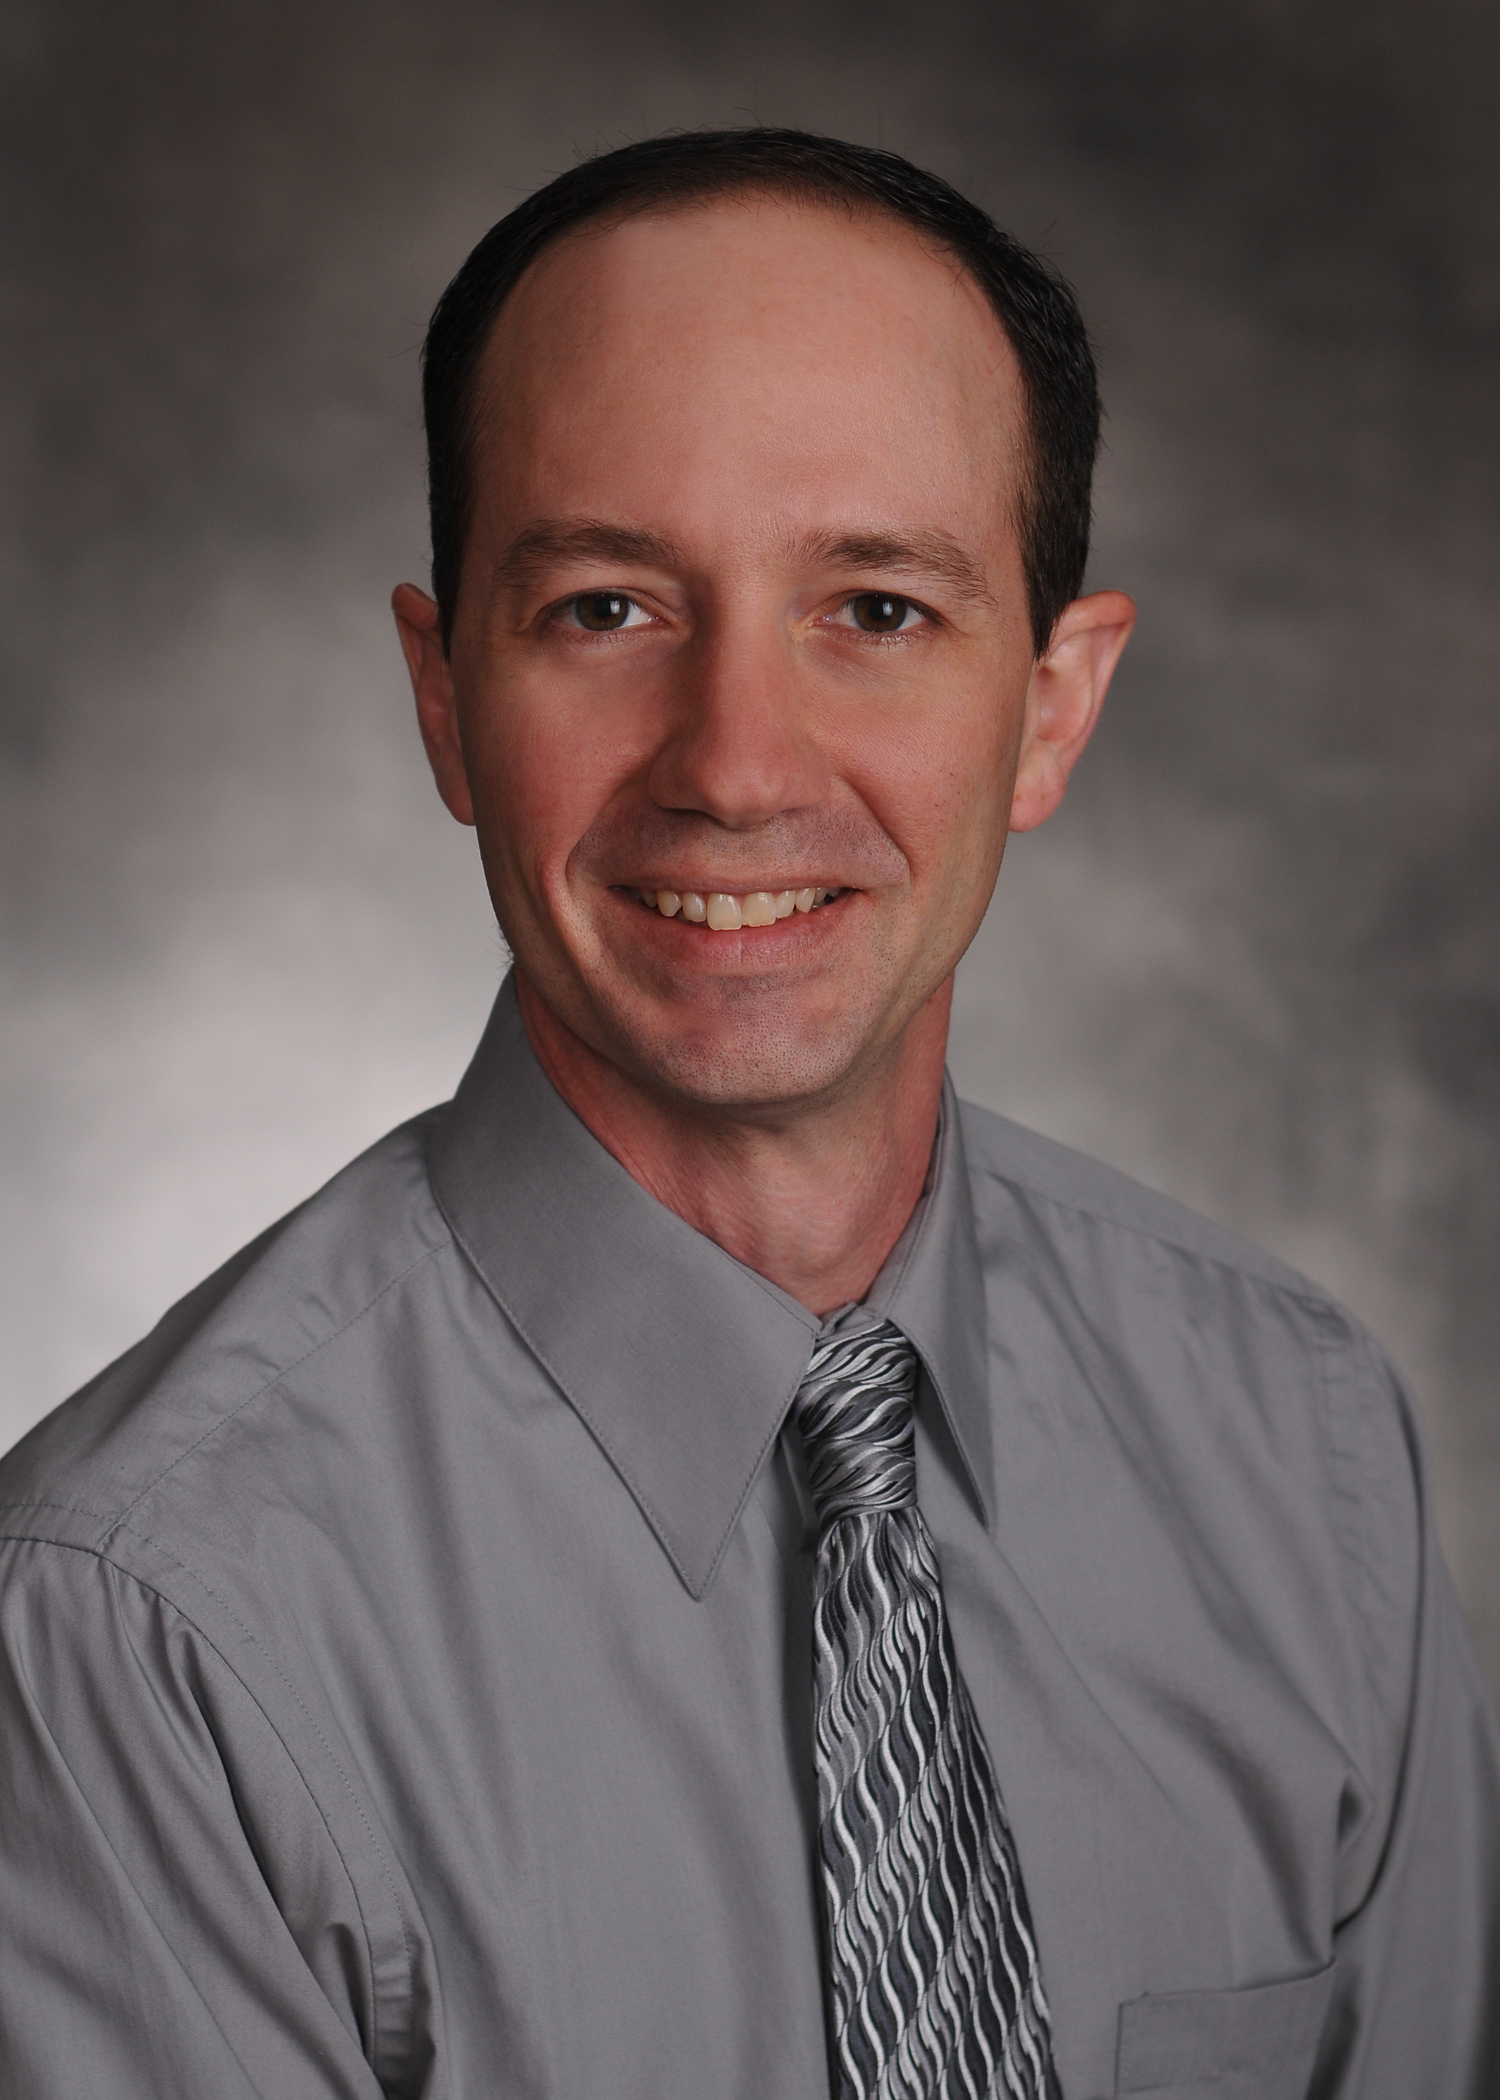 JEFF THOMS, PE | Sr. Structural Engineer